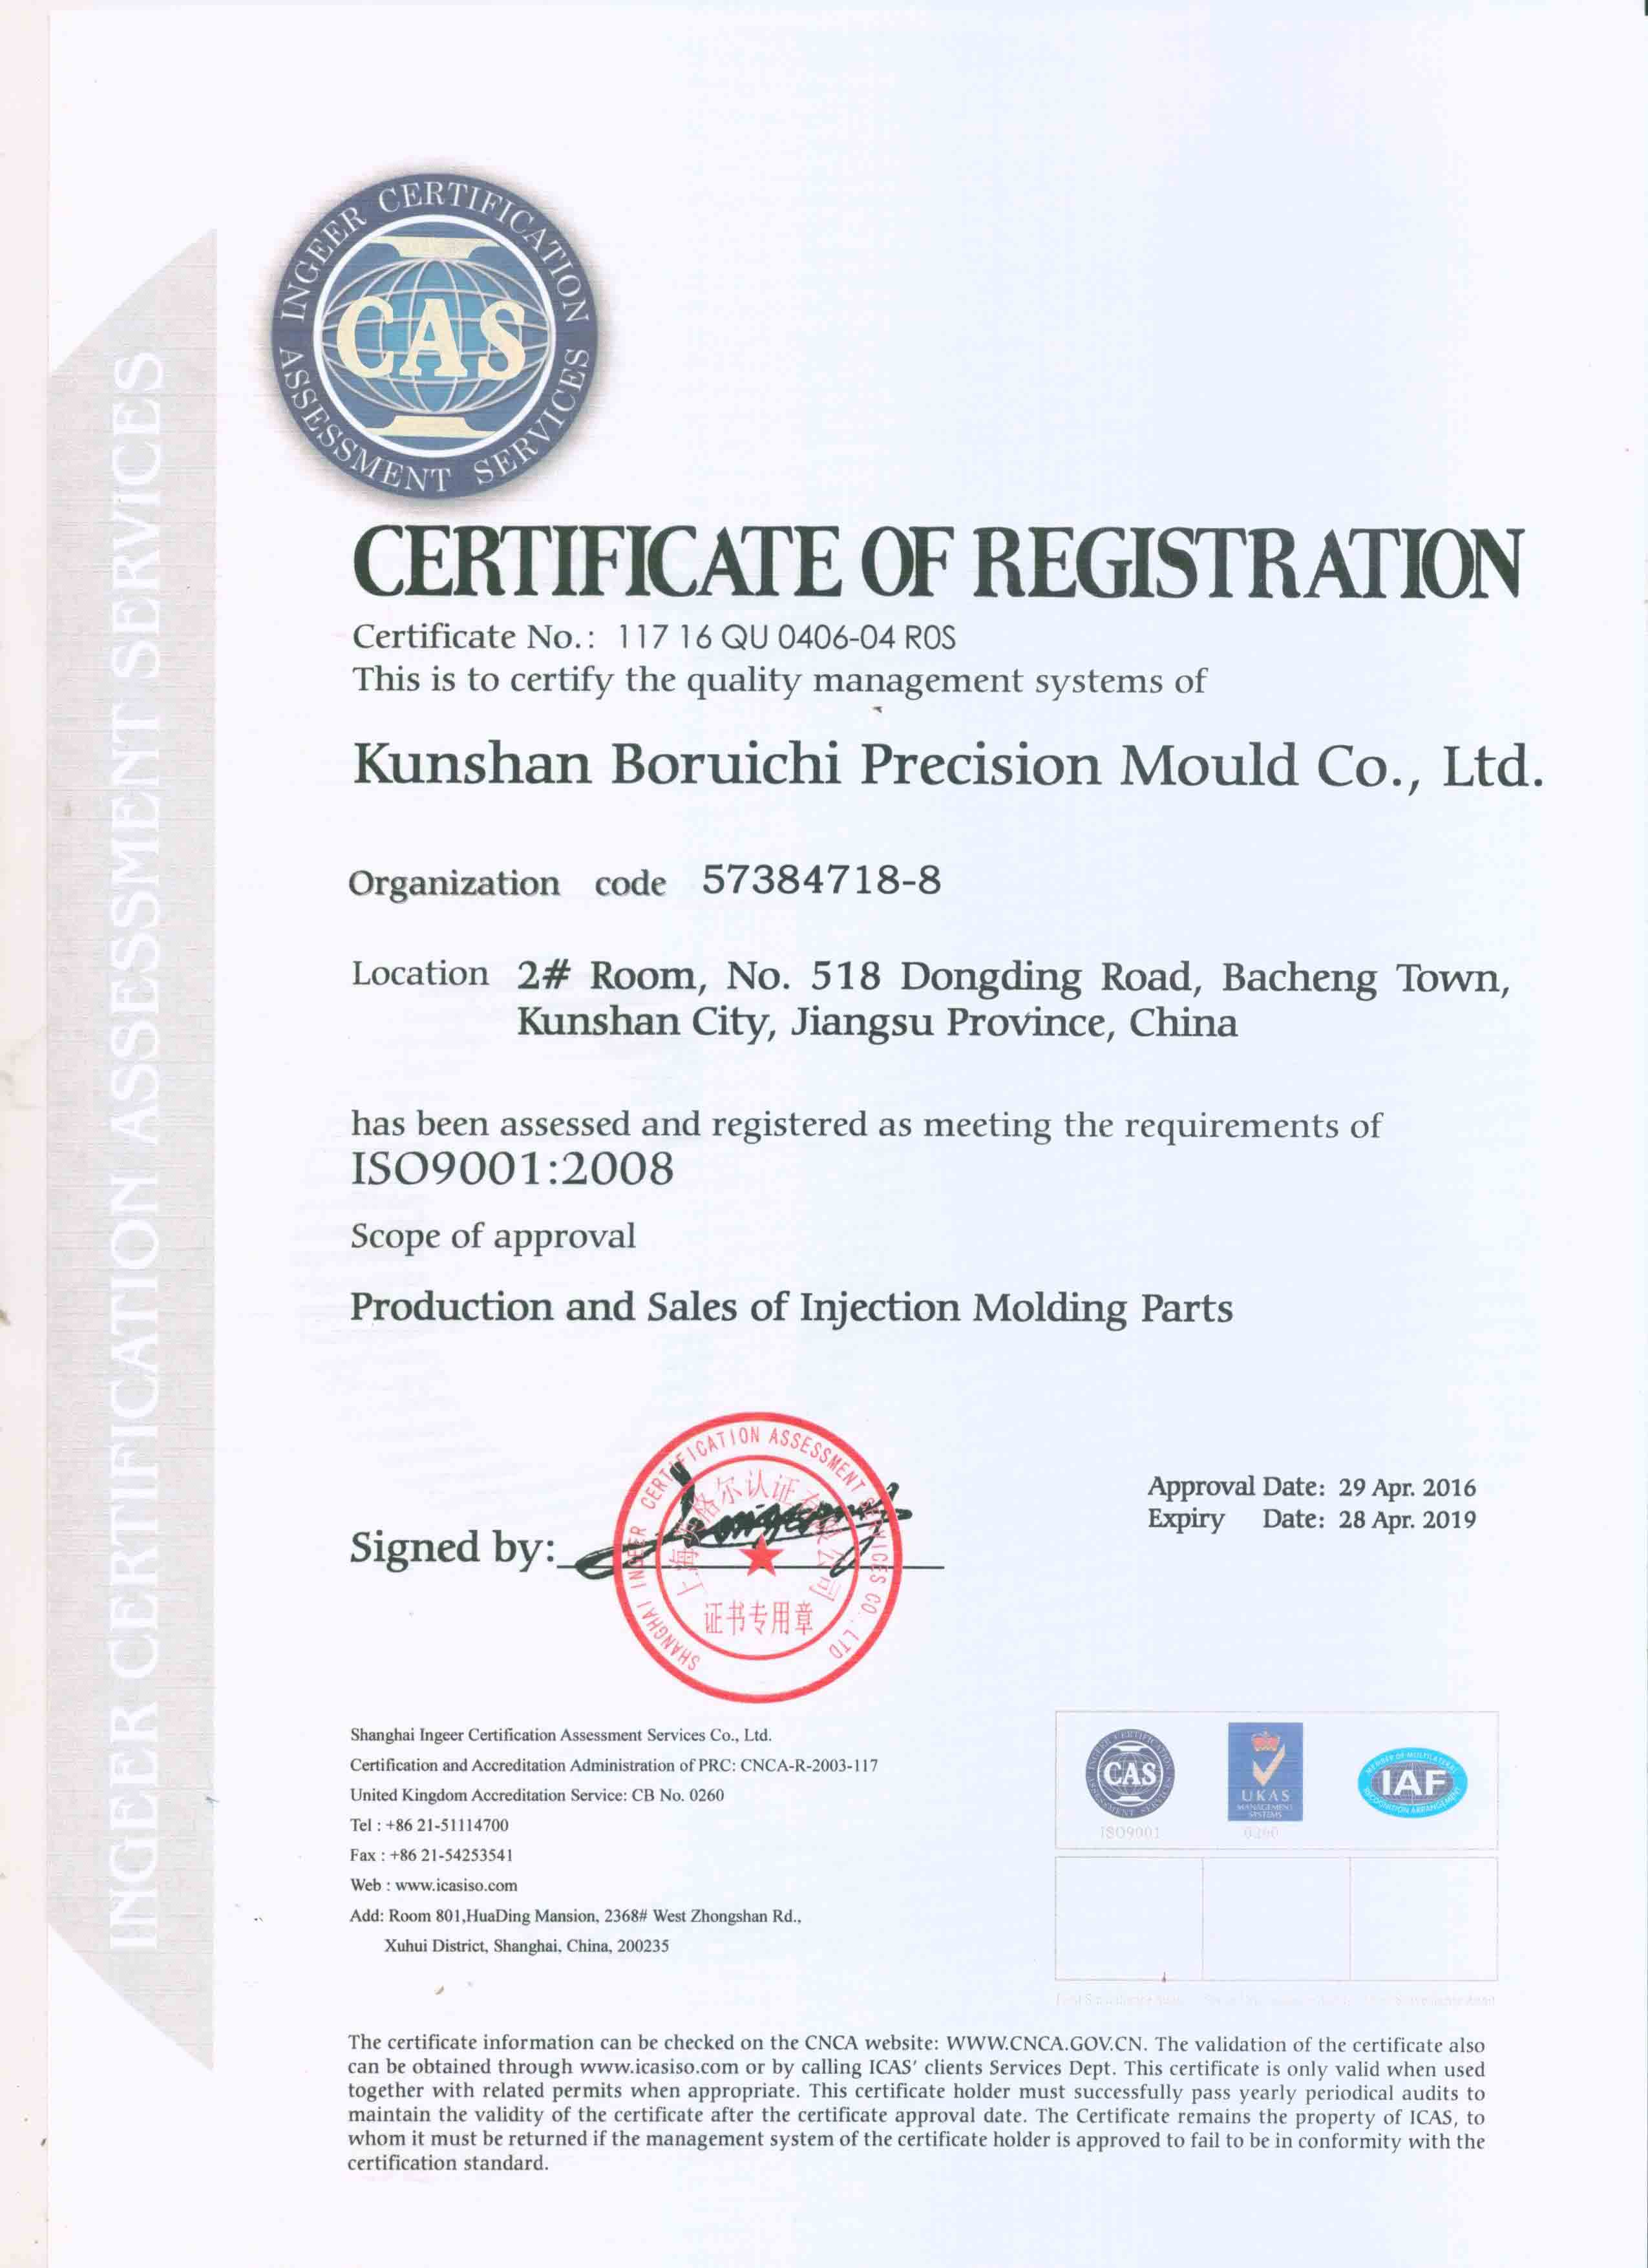 ISO9001 certificate of mould